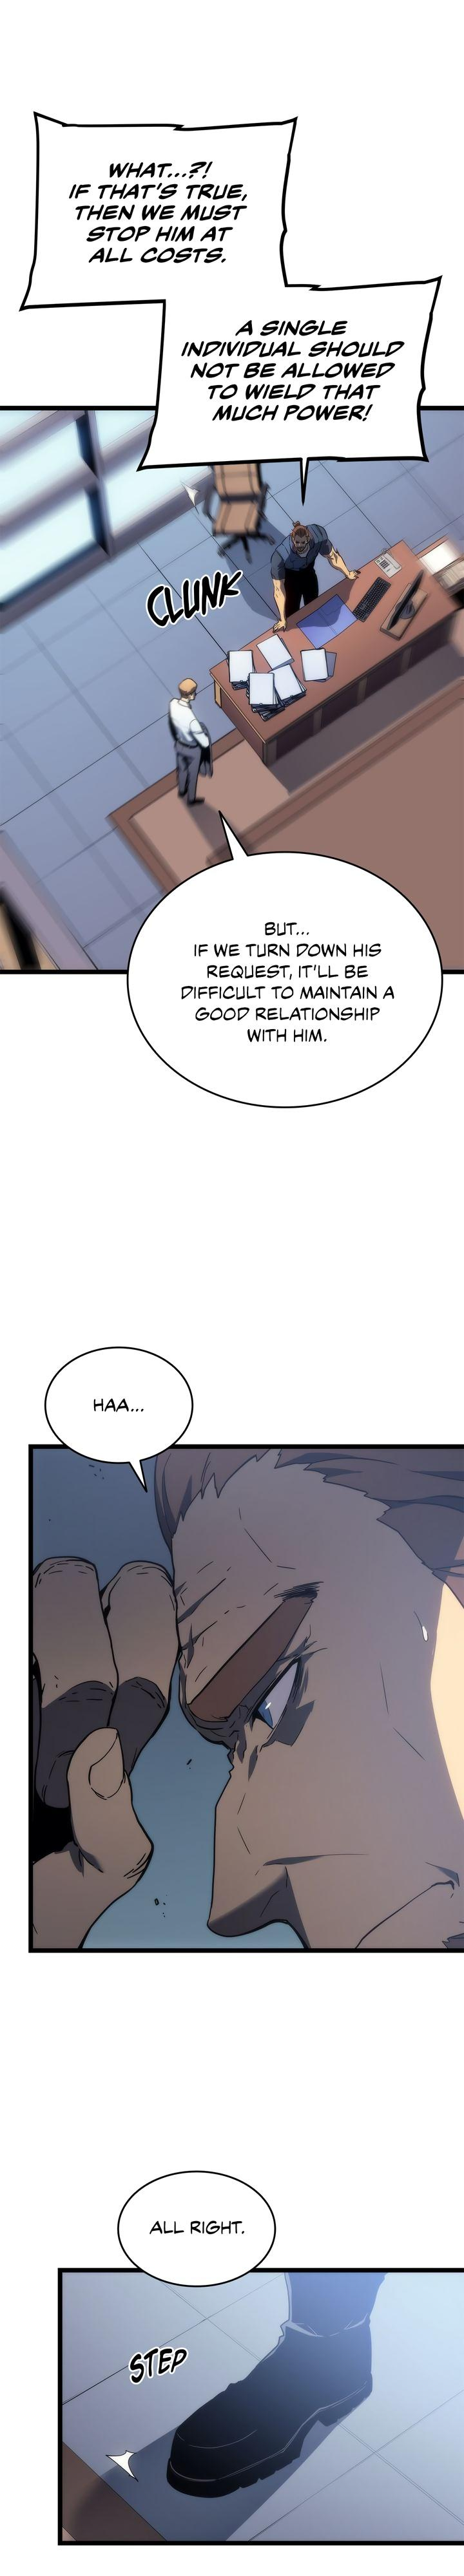 Solo Leveling Chapter 142 Page 26